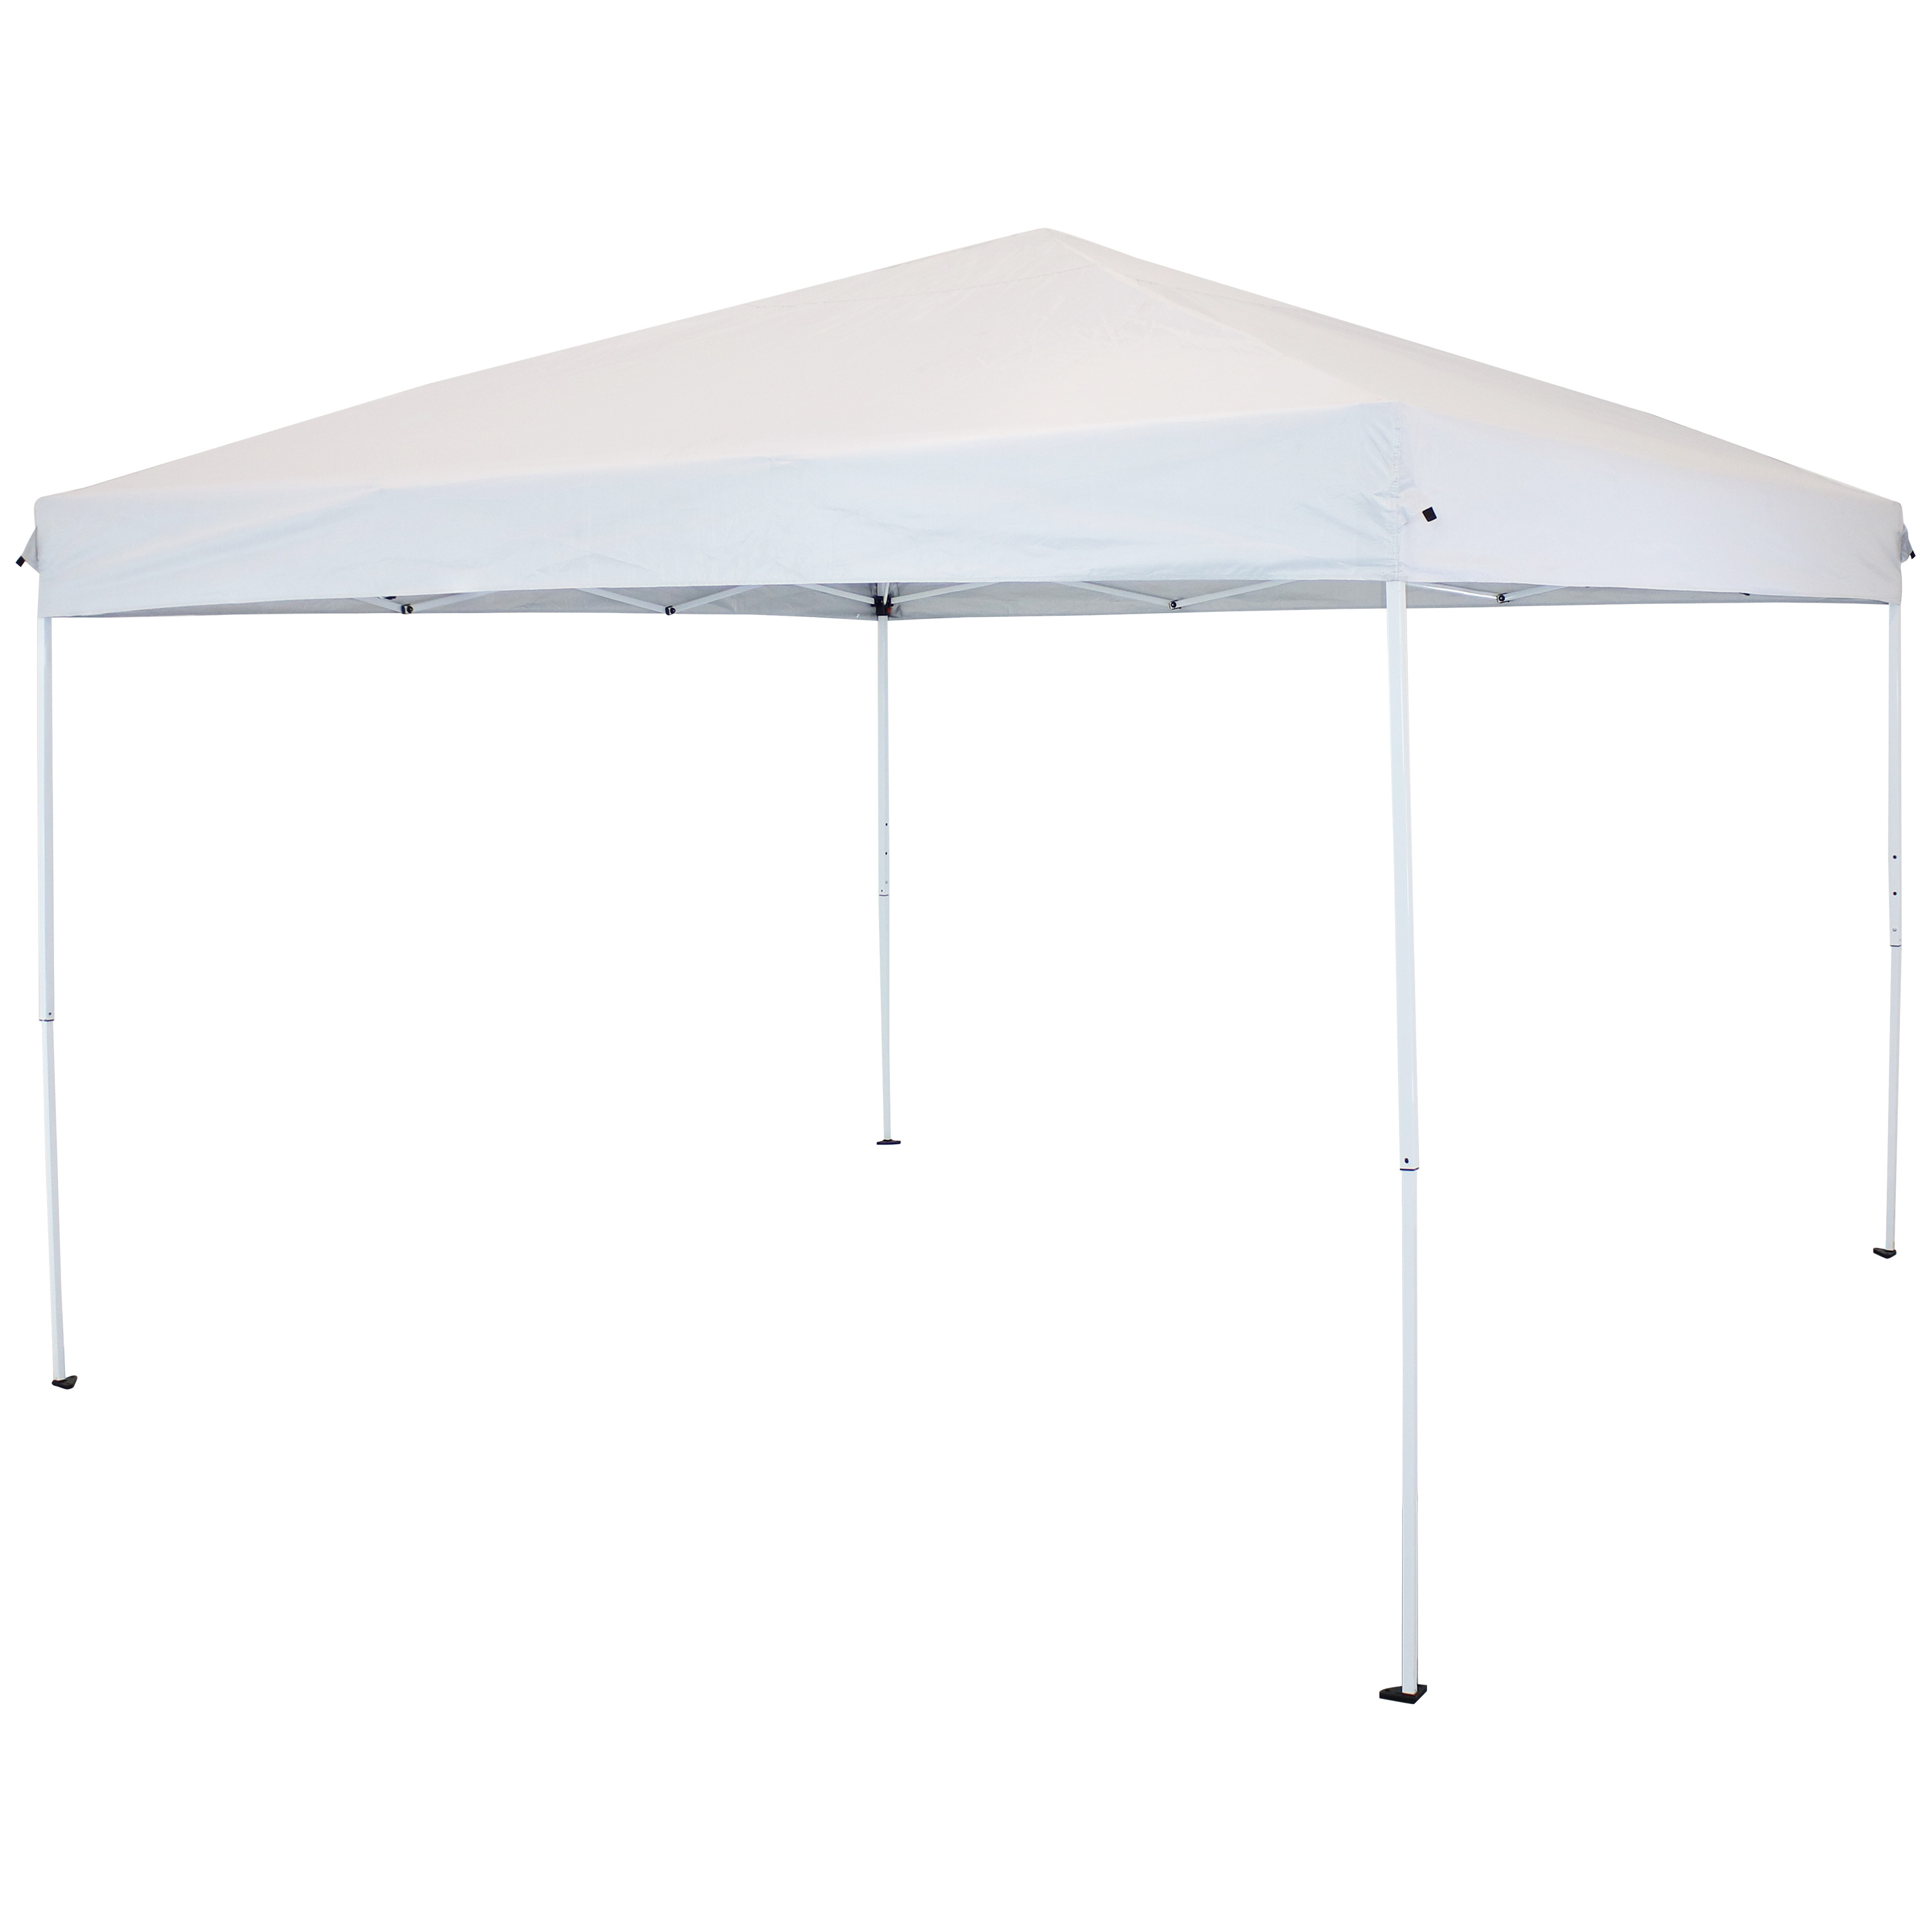 12 x 12 Foot Quick Up Steel Frame Canopy with Carrying Bag White